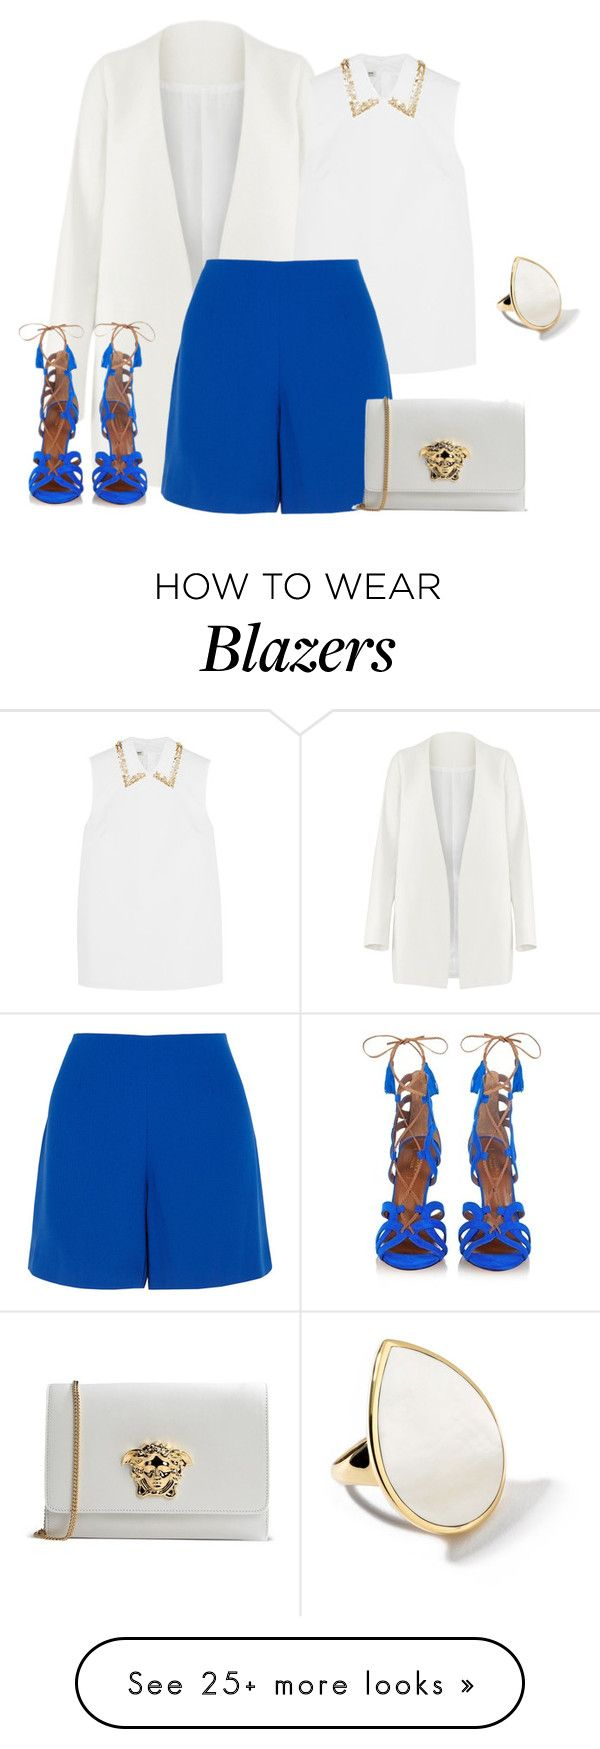 """""""outfit 3306"""" by natalyag on Polyvore featuring Non, Aquazzura, Miu Miu, Opening Ceremony, Ippolita, Versace, women's clothing, women, female and woman"""